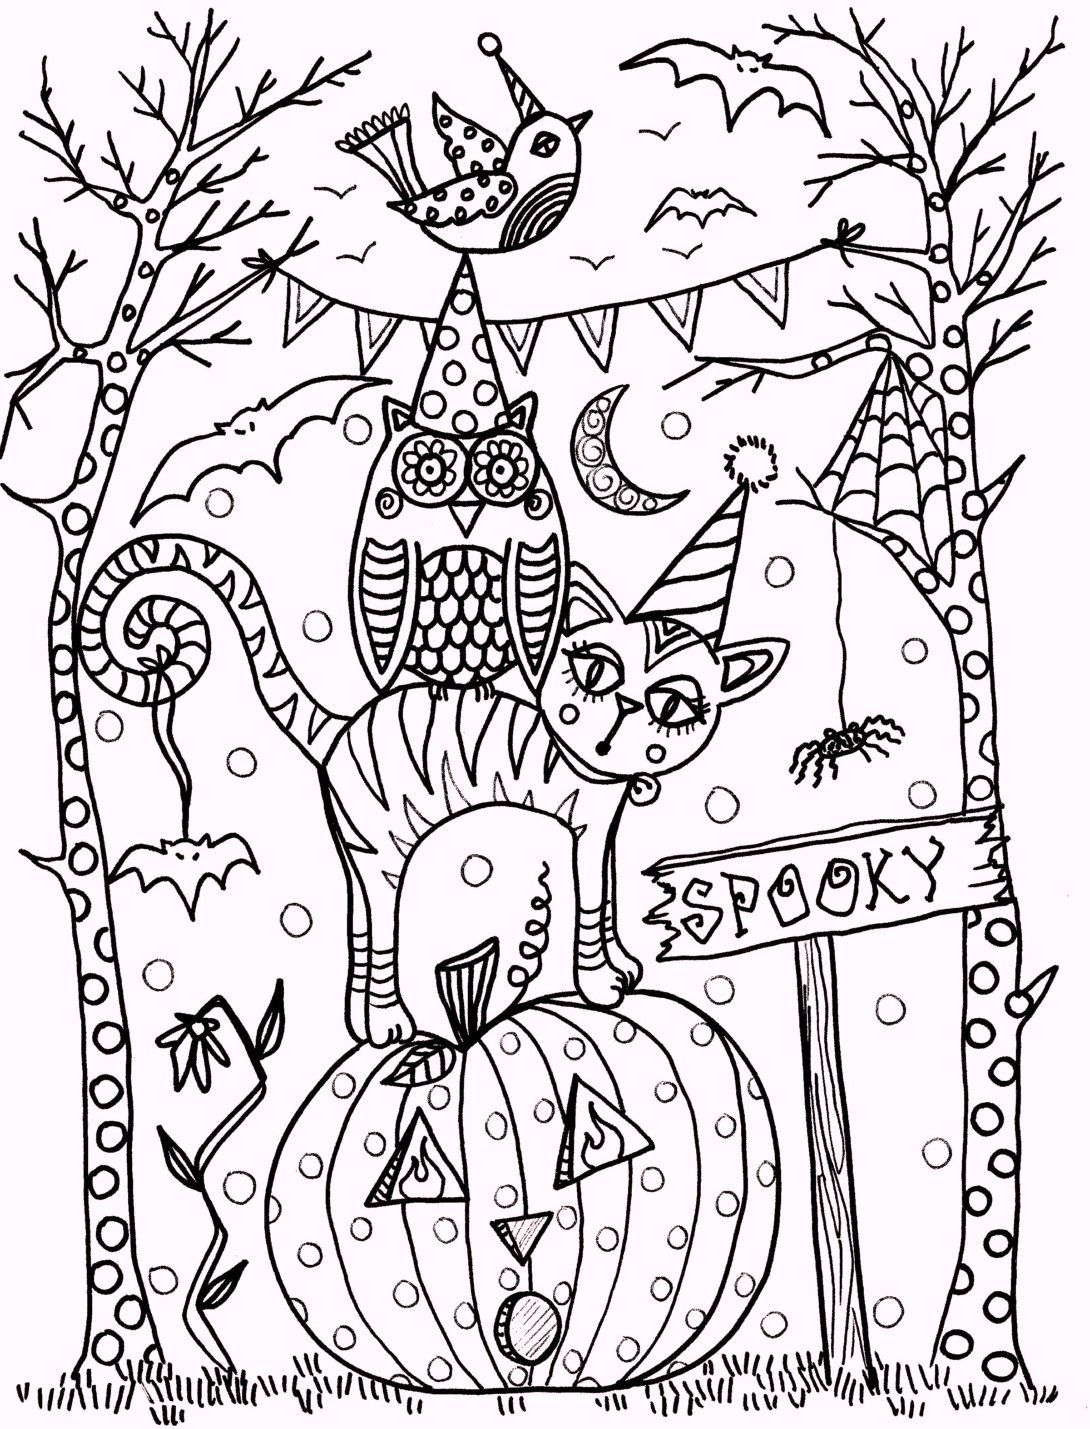 New Vintage Halloween Art Halloween Coloring Book Fall Coloring